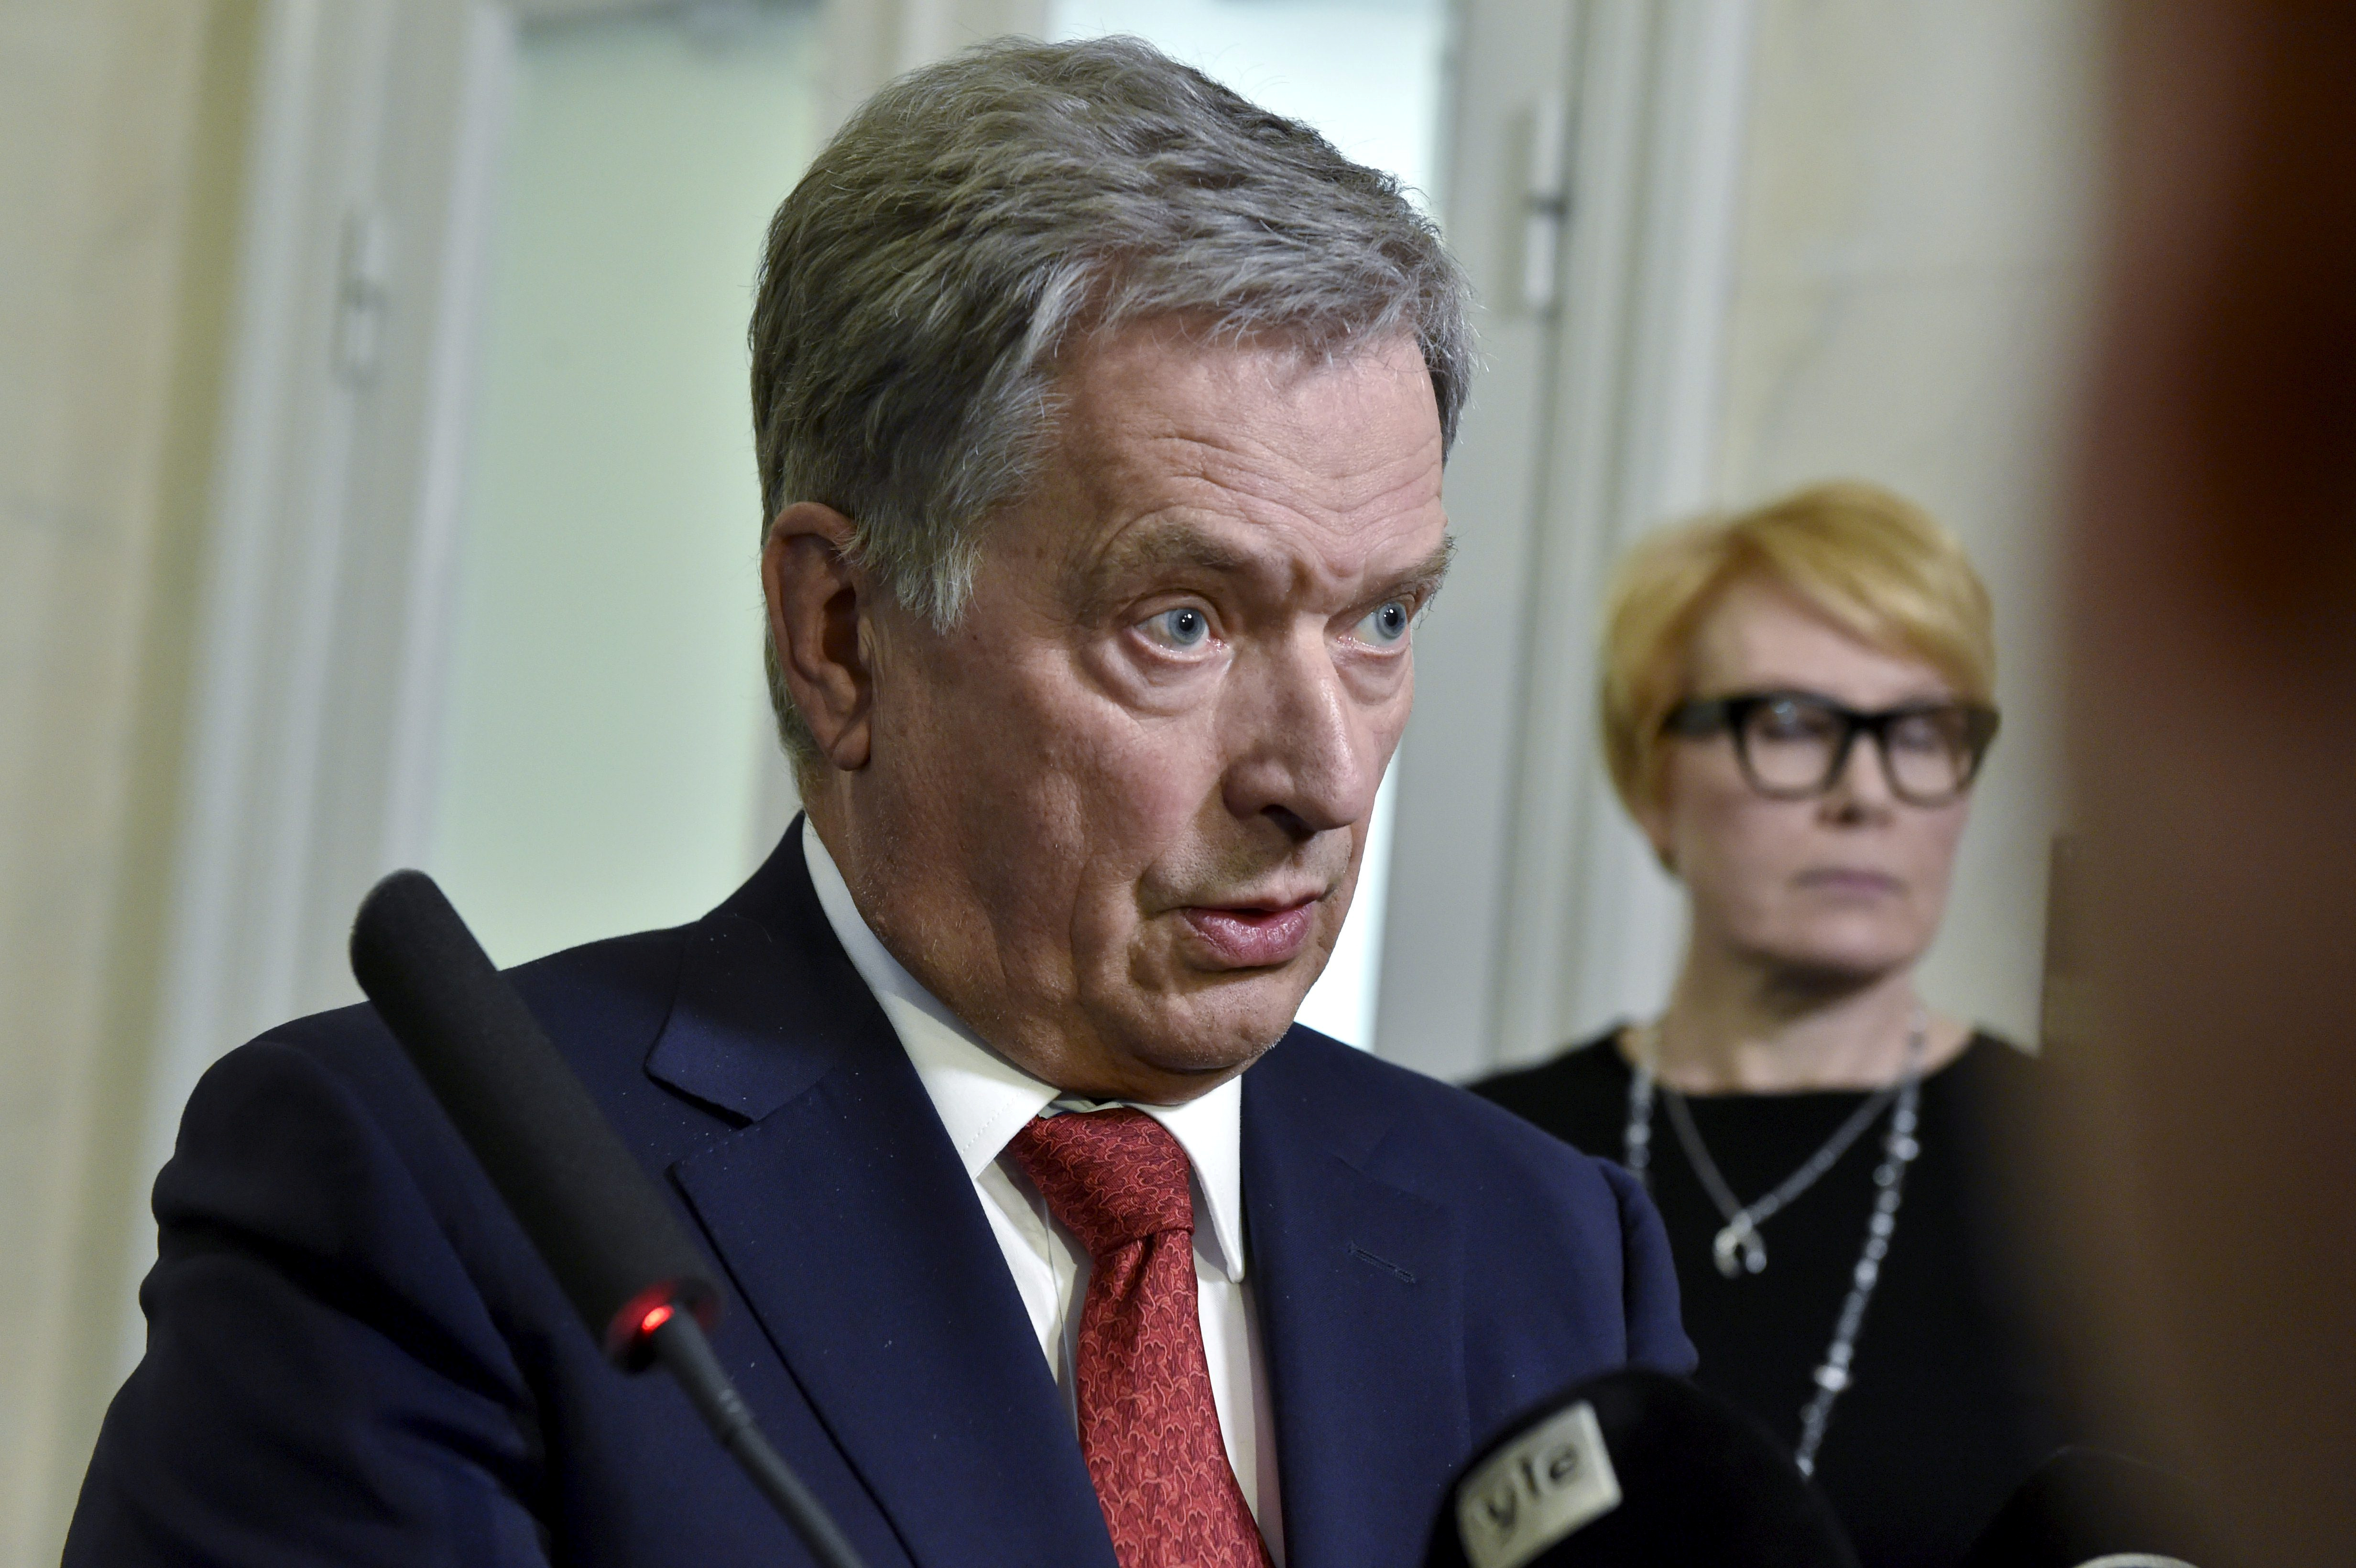 Finnish President Sauli Niinisto attends a news conference in Helsinki 8b944a227ad